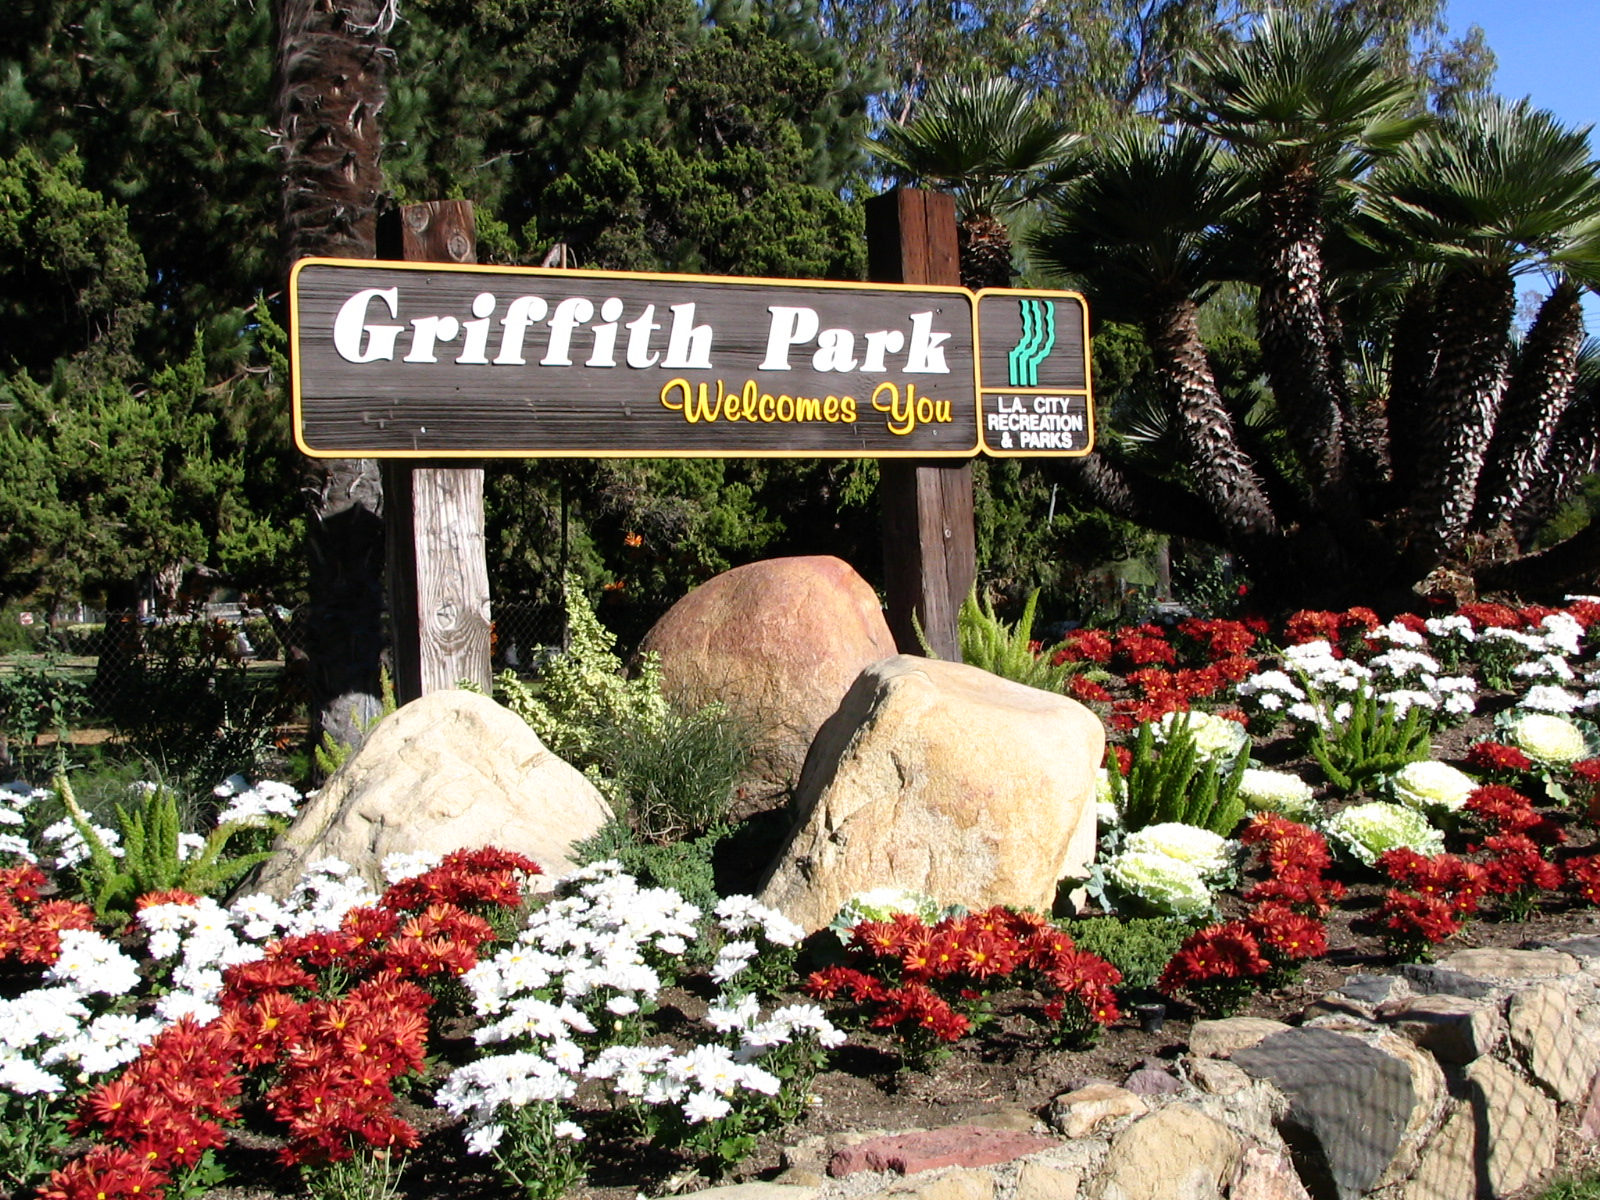 Griffith Park welcome sign